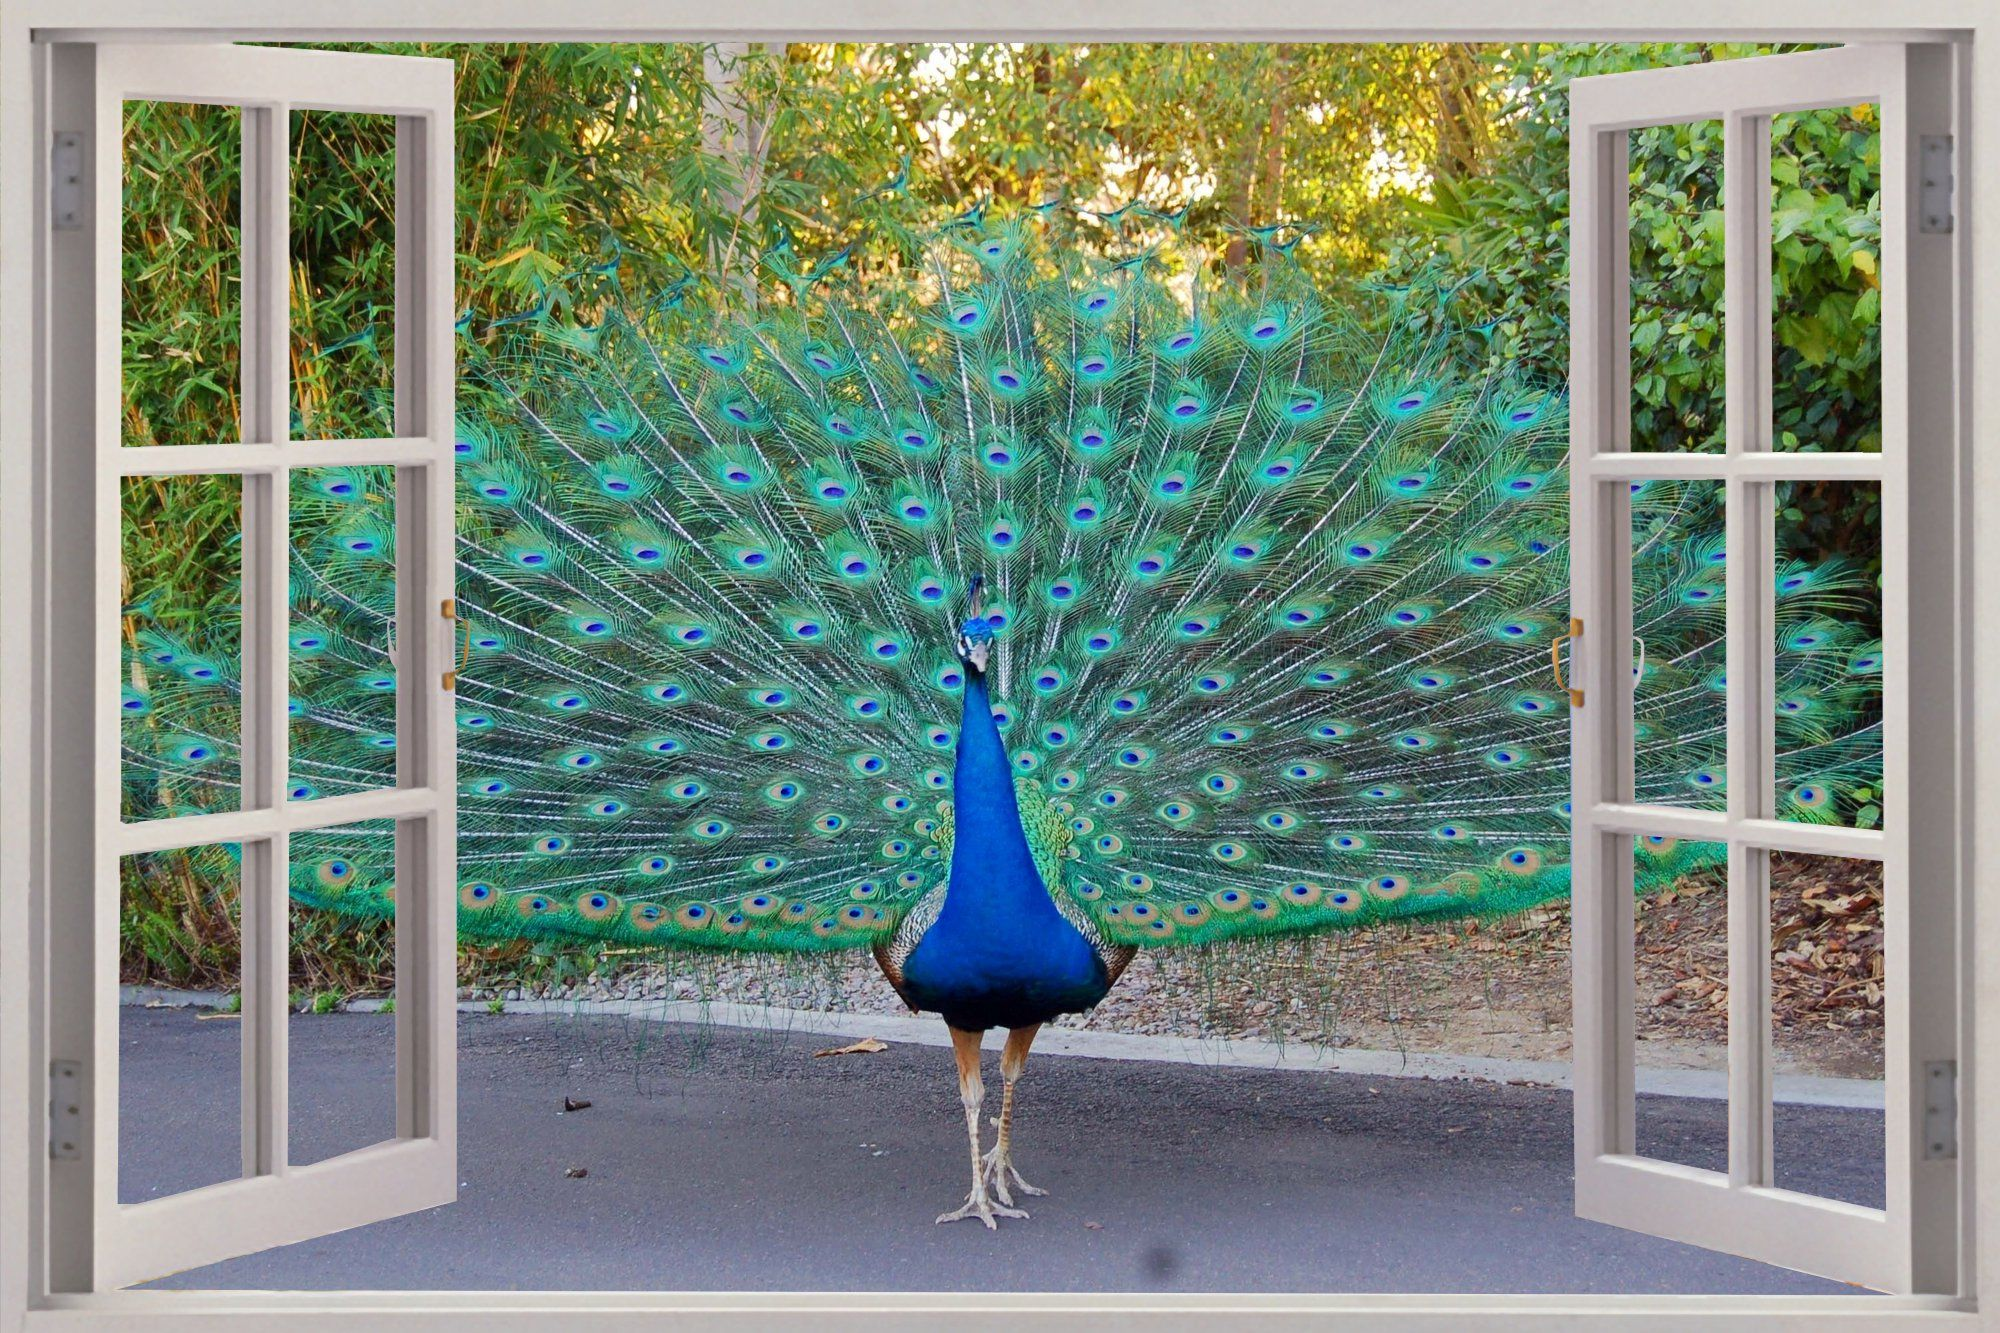 Details about 3D Window View Beautiful Peacock Wall